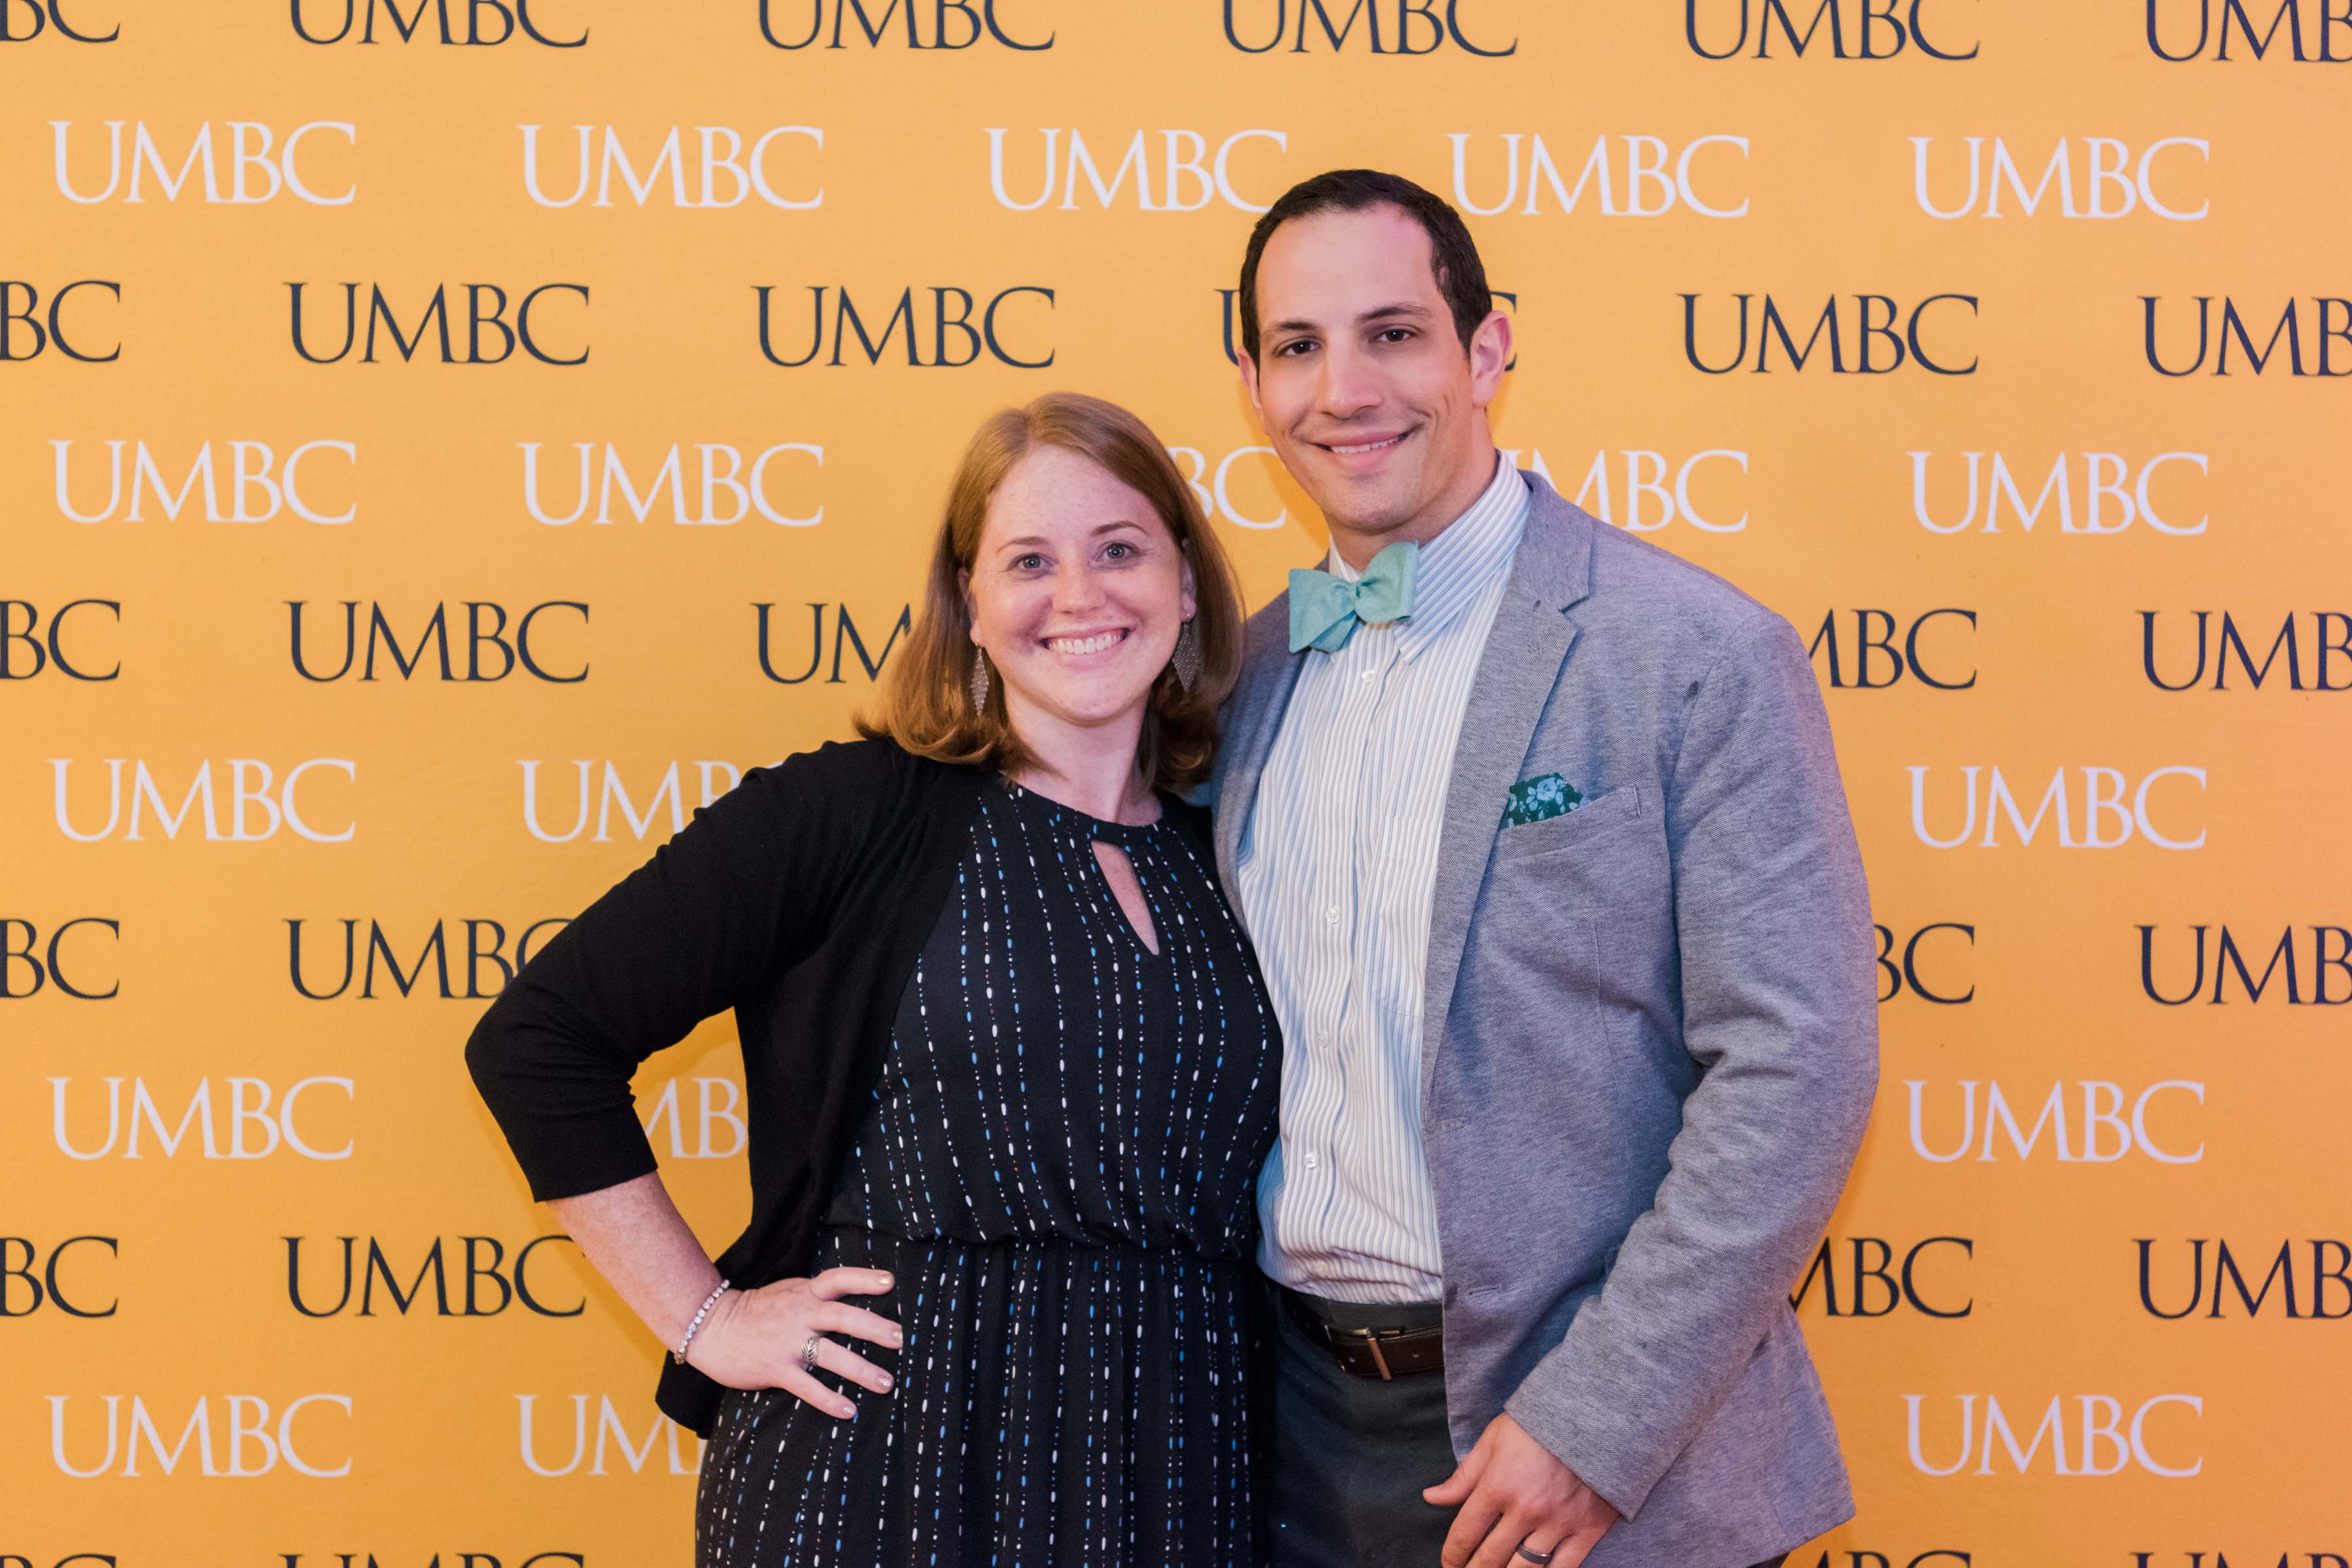 Man with bowtie poses with woman and UMBC wall for CYA wine tasting event